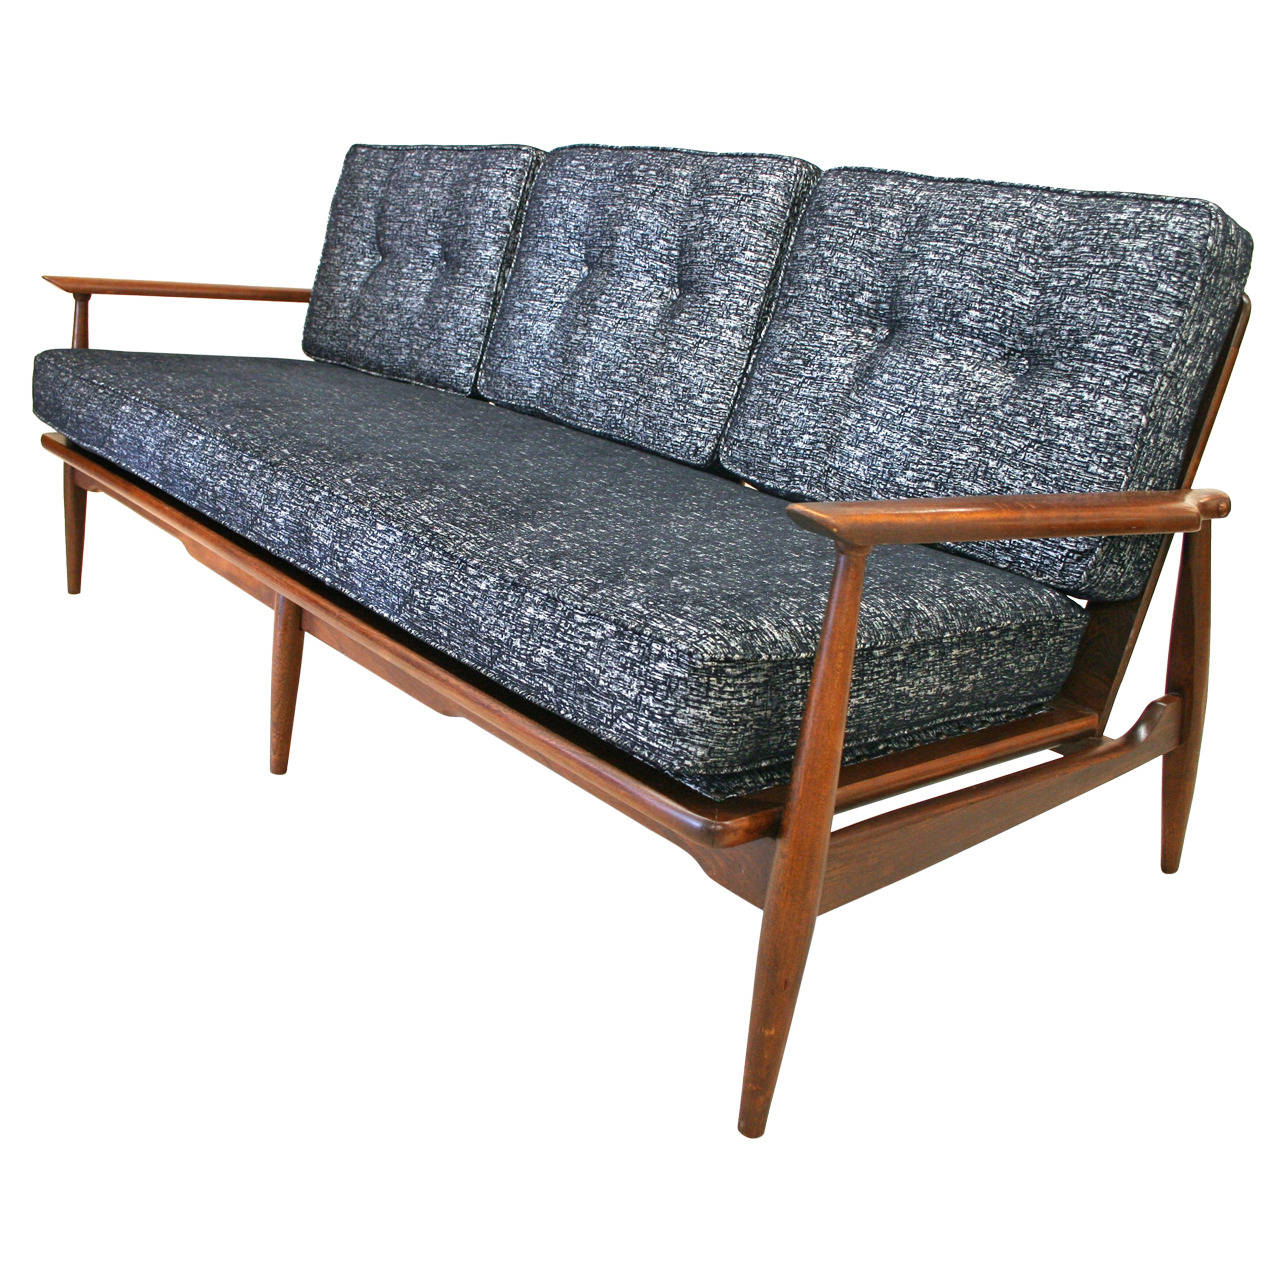 Mid century modern danish sofa with walnut frame and new for Mid century modern sofas